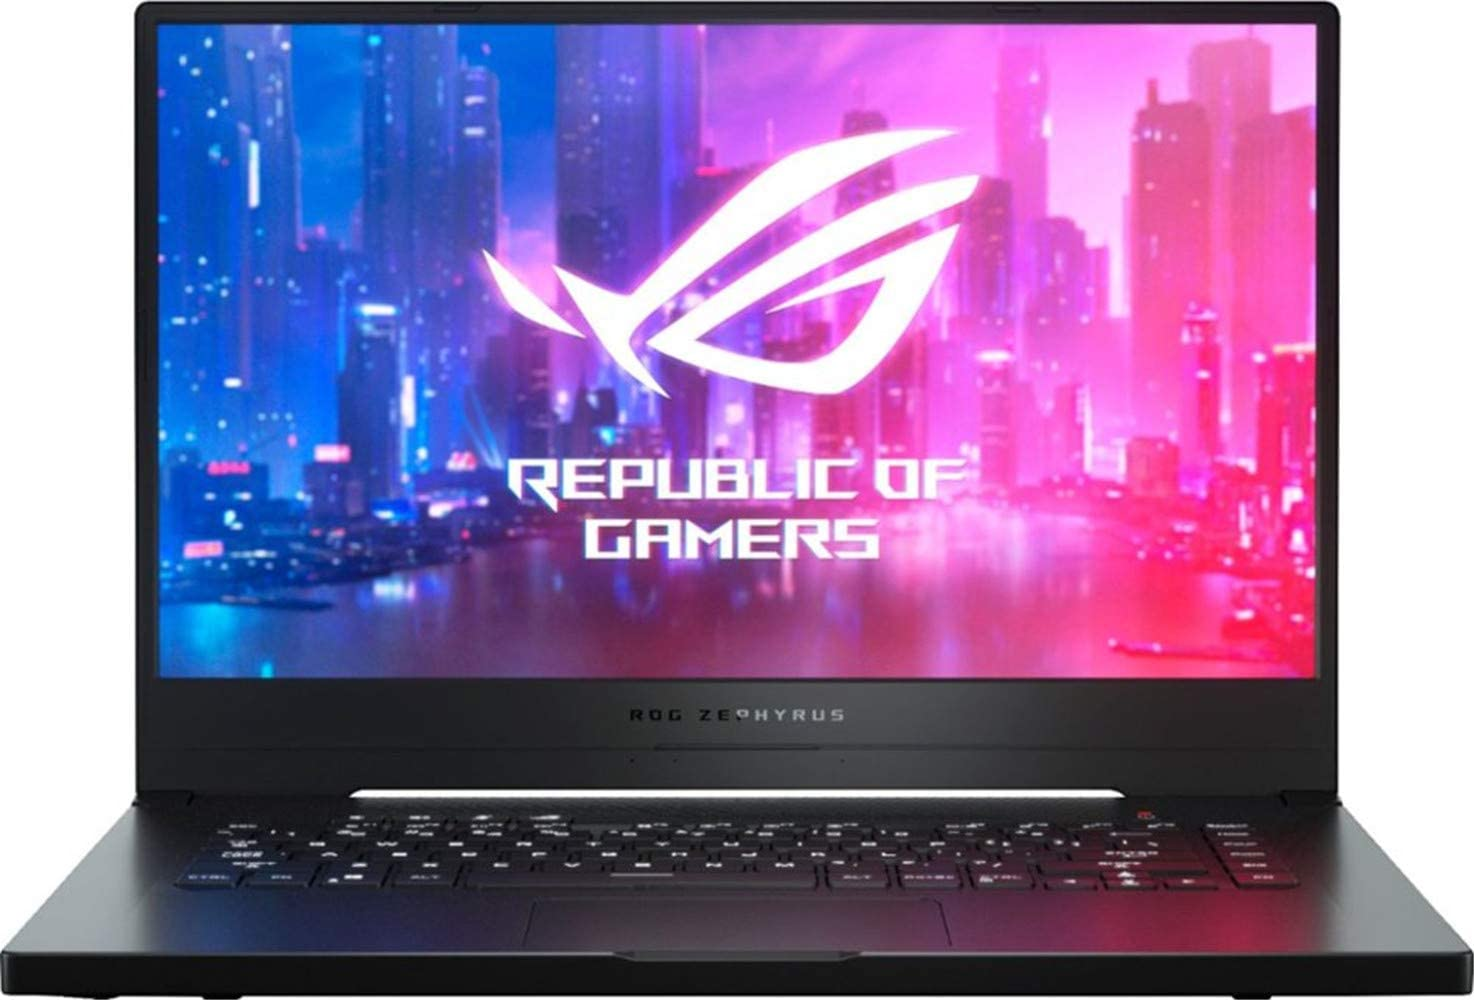 """ASUS ROG 15.6"""" Gaming Laptop with the Ryzen 7 3750H Quad-Core up to 4.0GHz Processor, 16GB DDR4, 512GB PCIE SSD, and GeForce GTX 1660 Ti 6GB Graphics"""